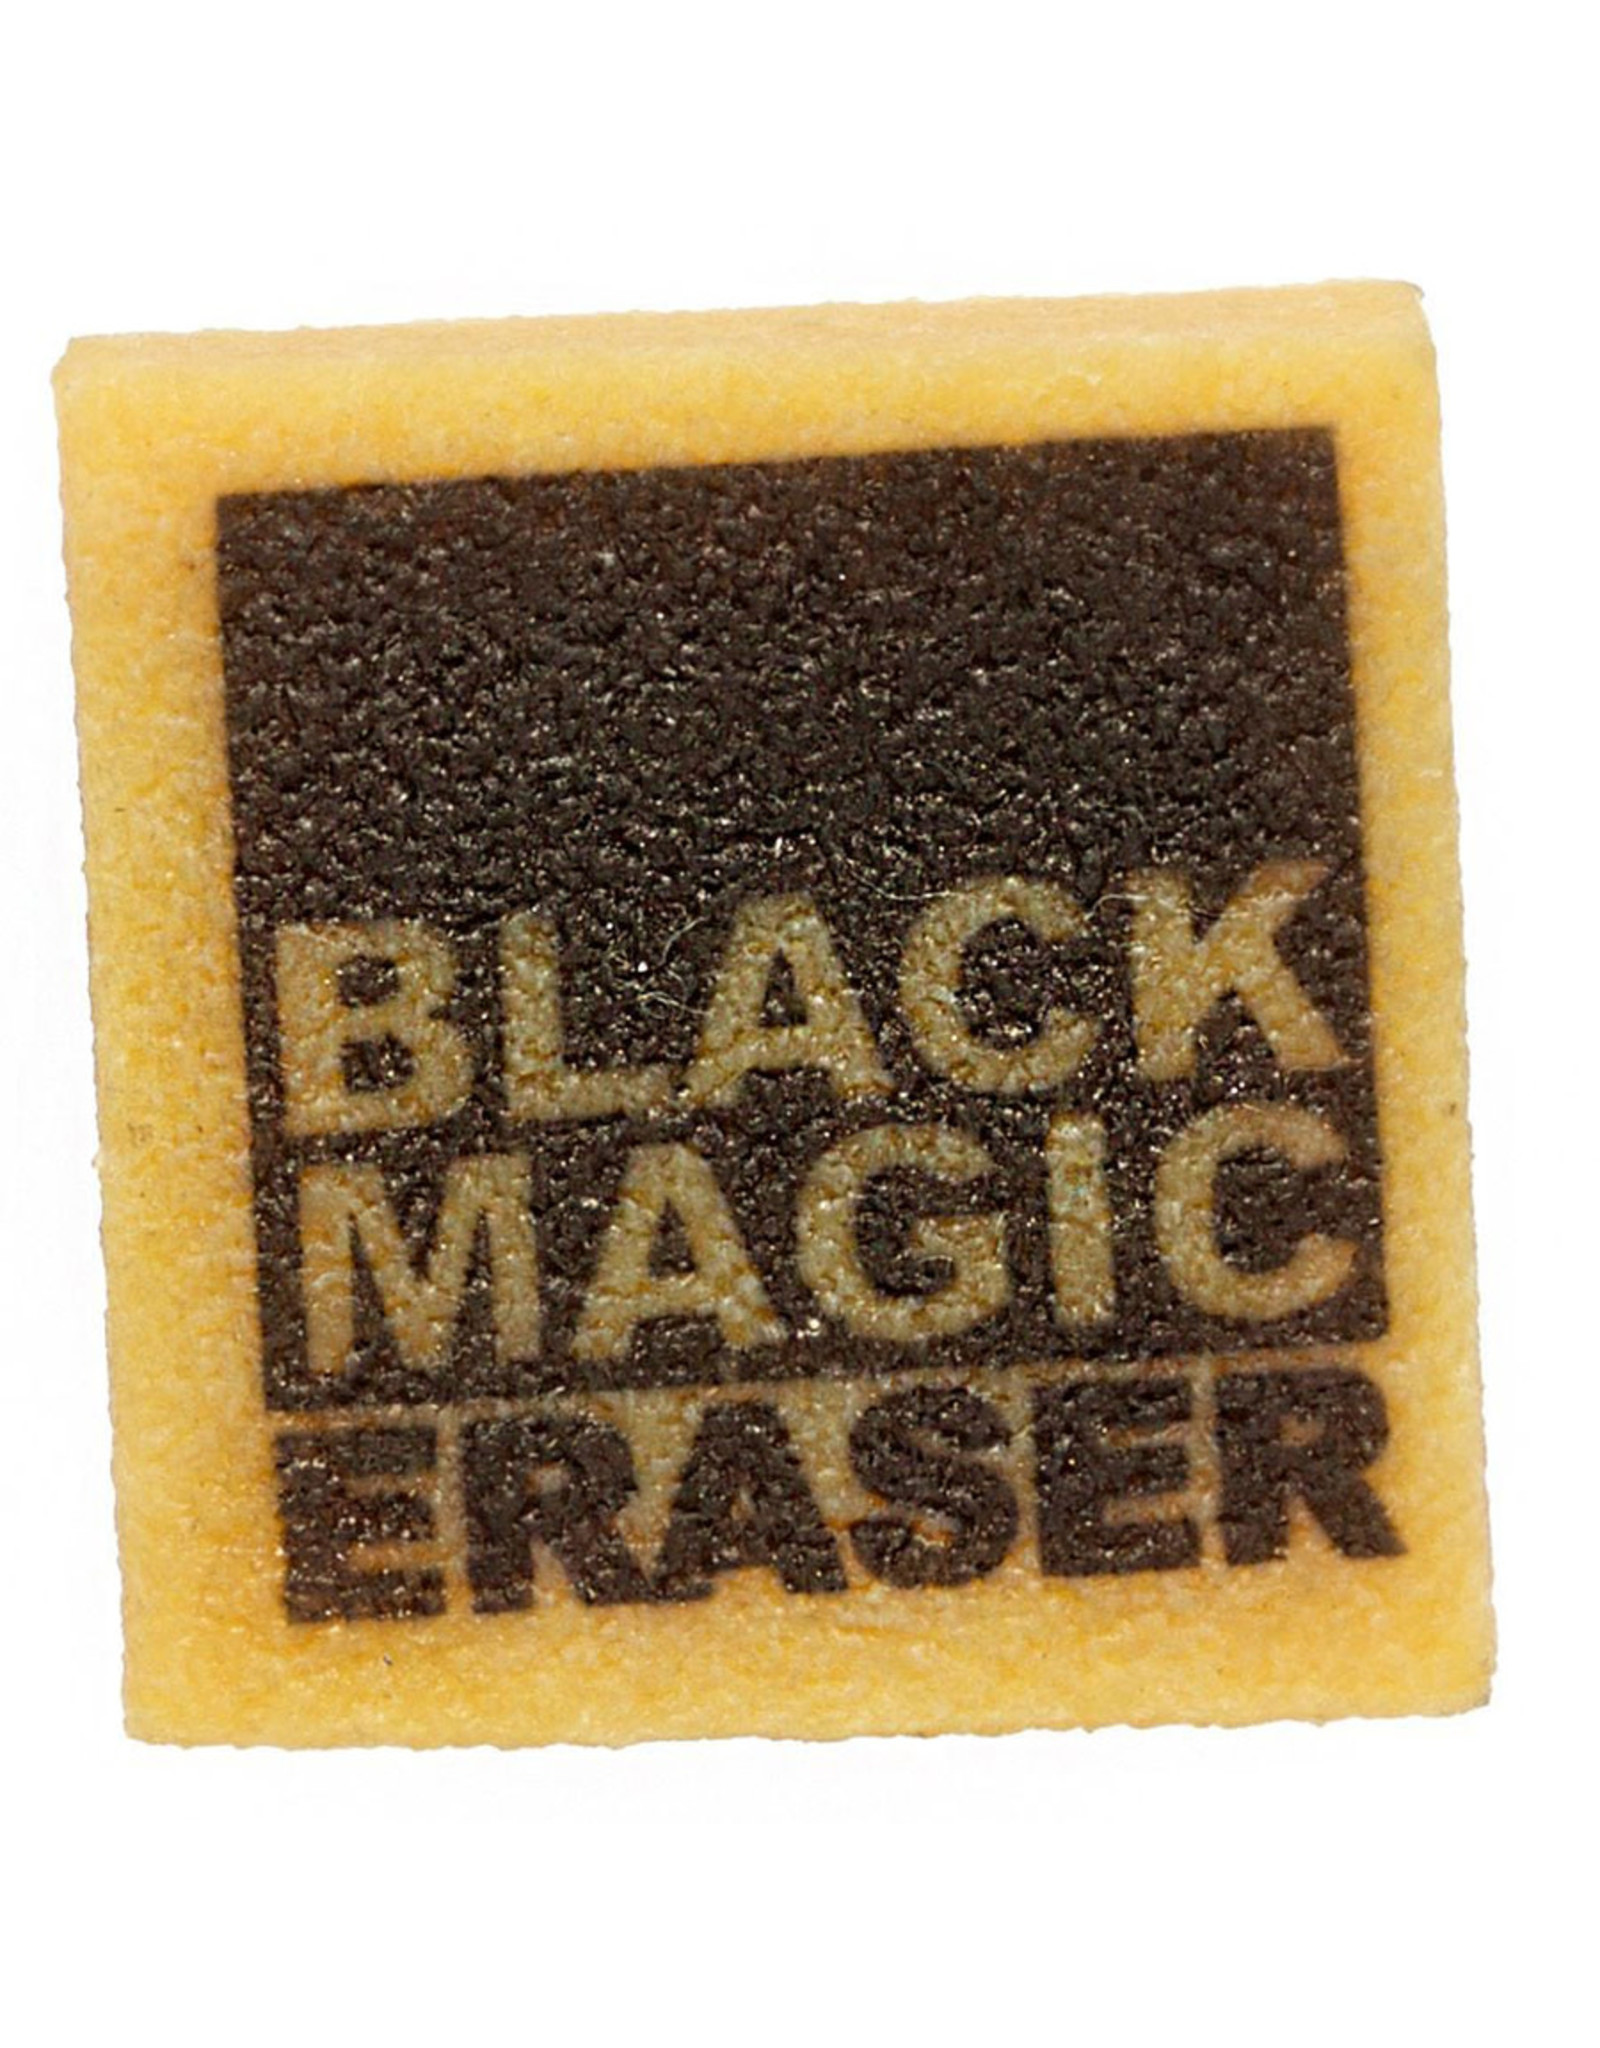 Black Magic Black Magic Eraser Grip Cleaner